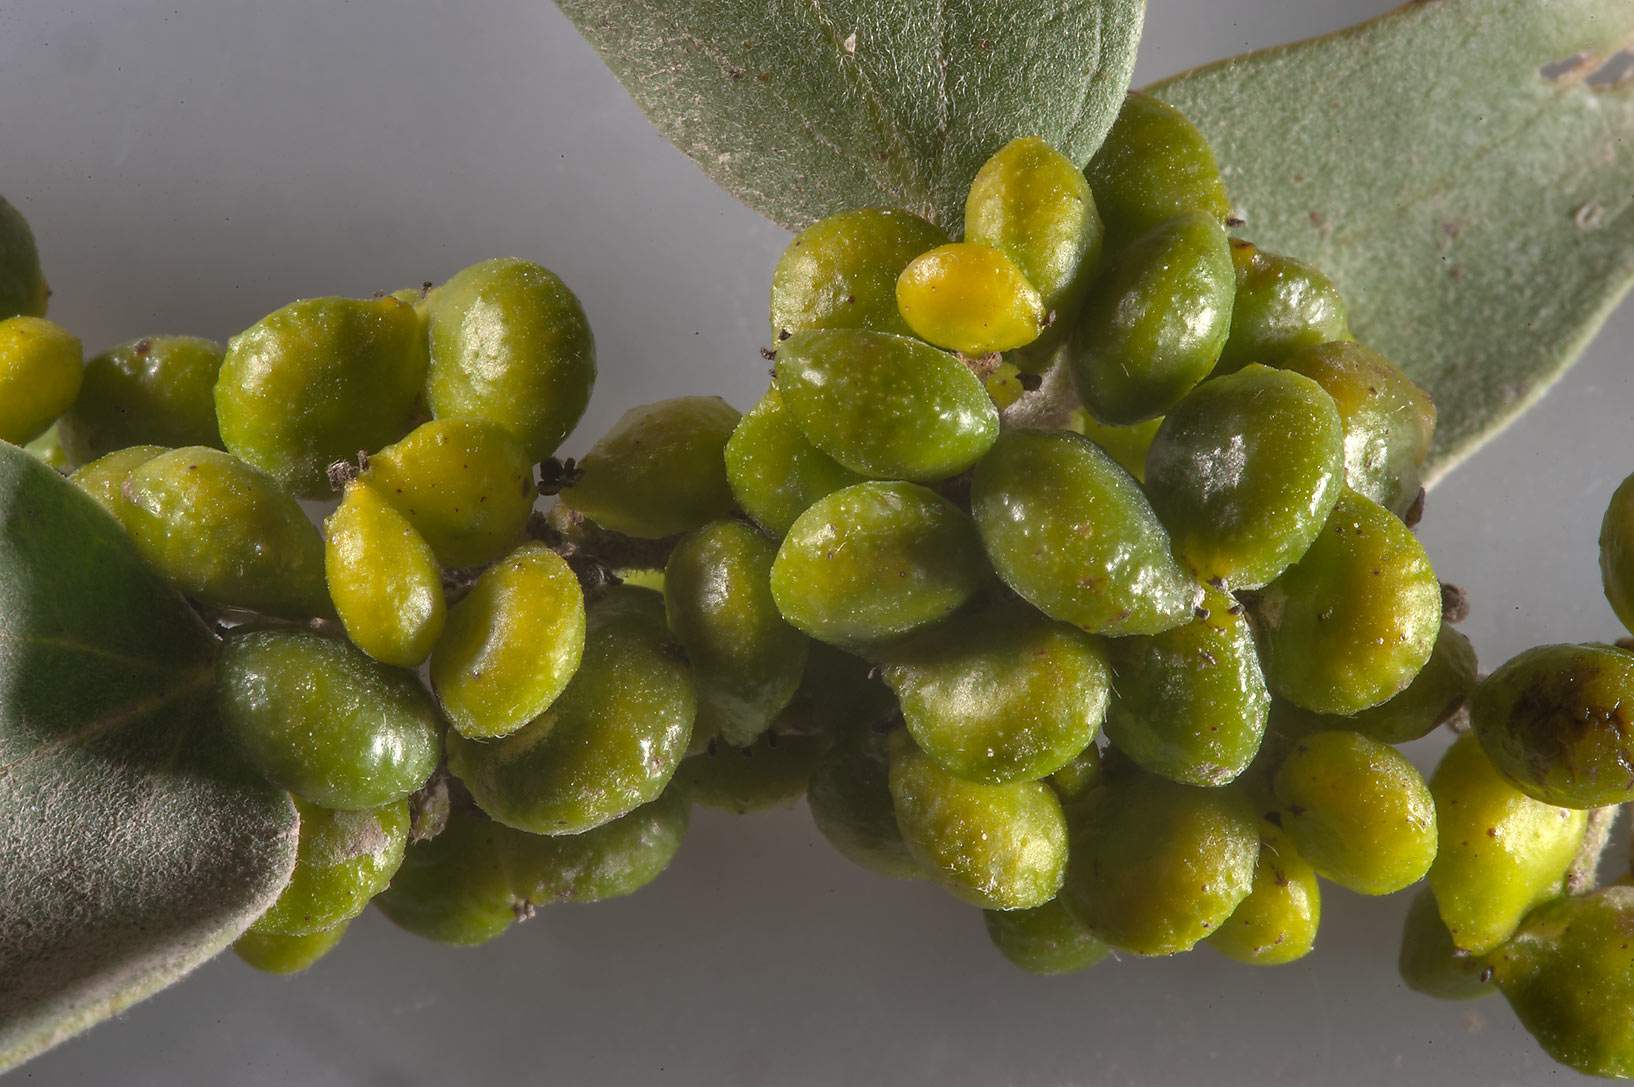 Masses of green berry like galls on a branch of...north from Shekhaniya. Qatar